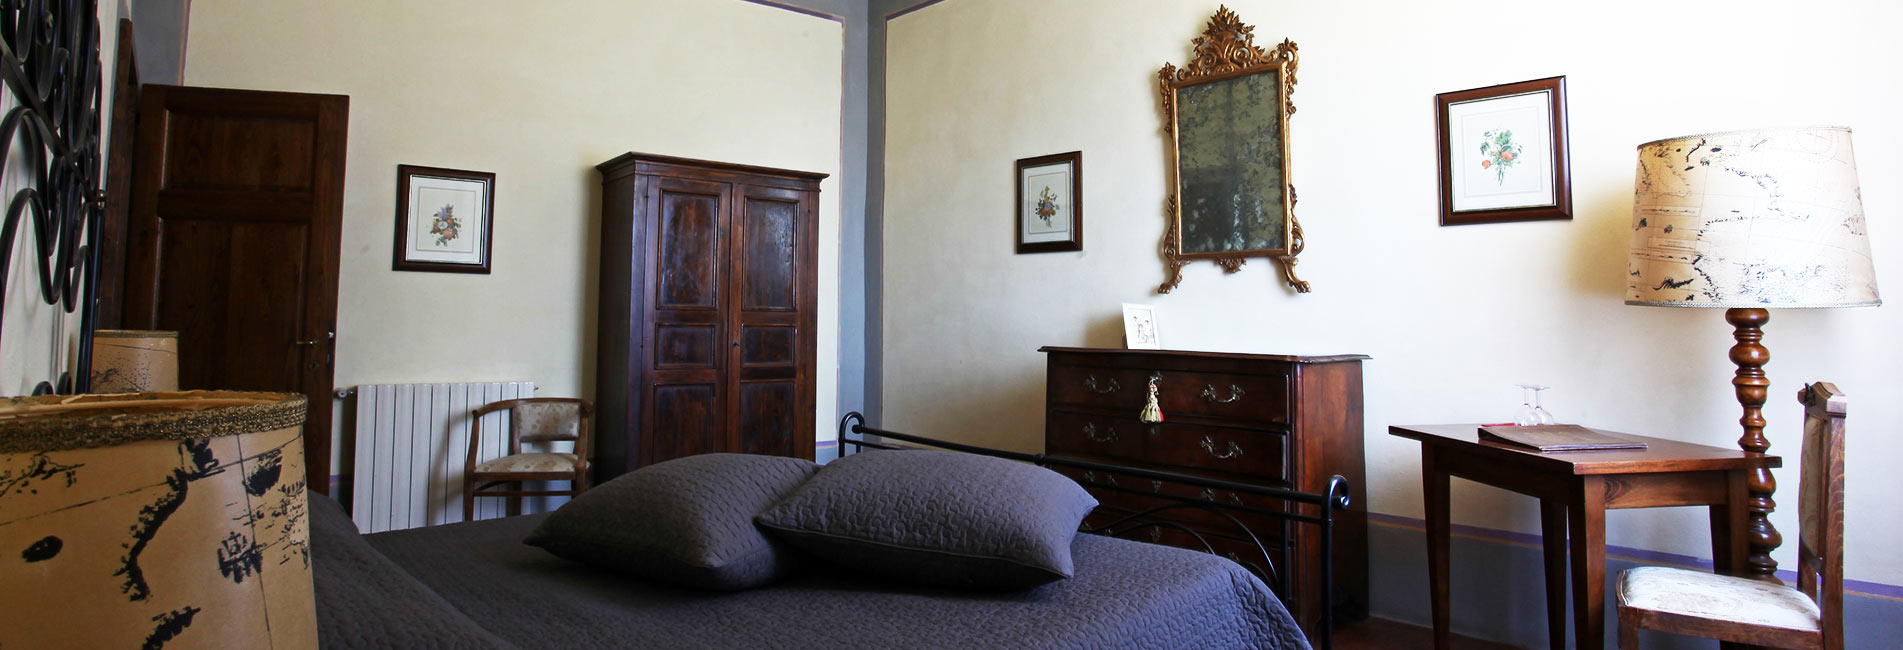 camere-1